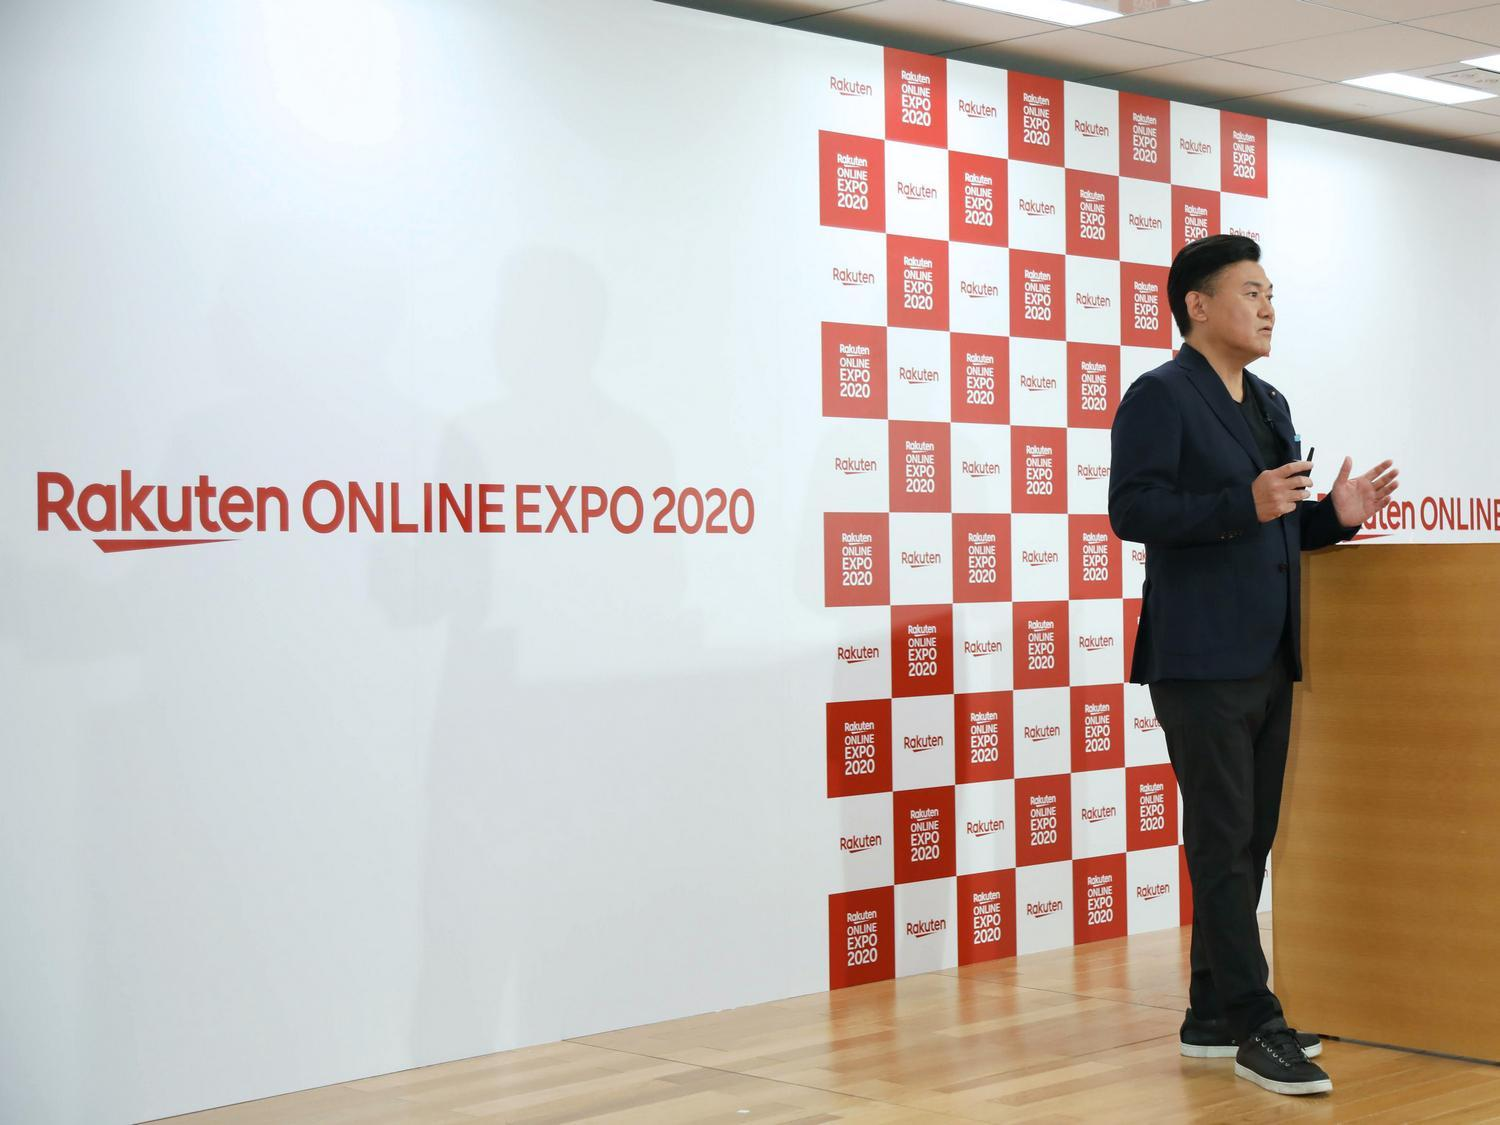 Rakuten CEO Mickey Mikitani addressed the Rakuten Ichiba merchant community remotely to review learnings from the year and share his vision for the future.